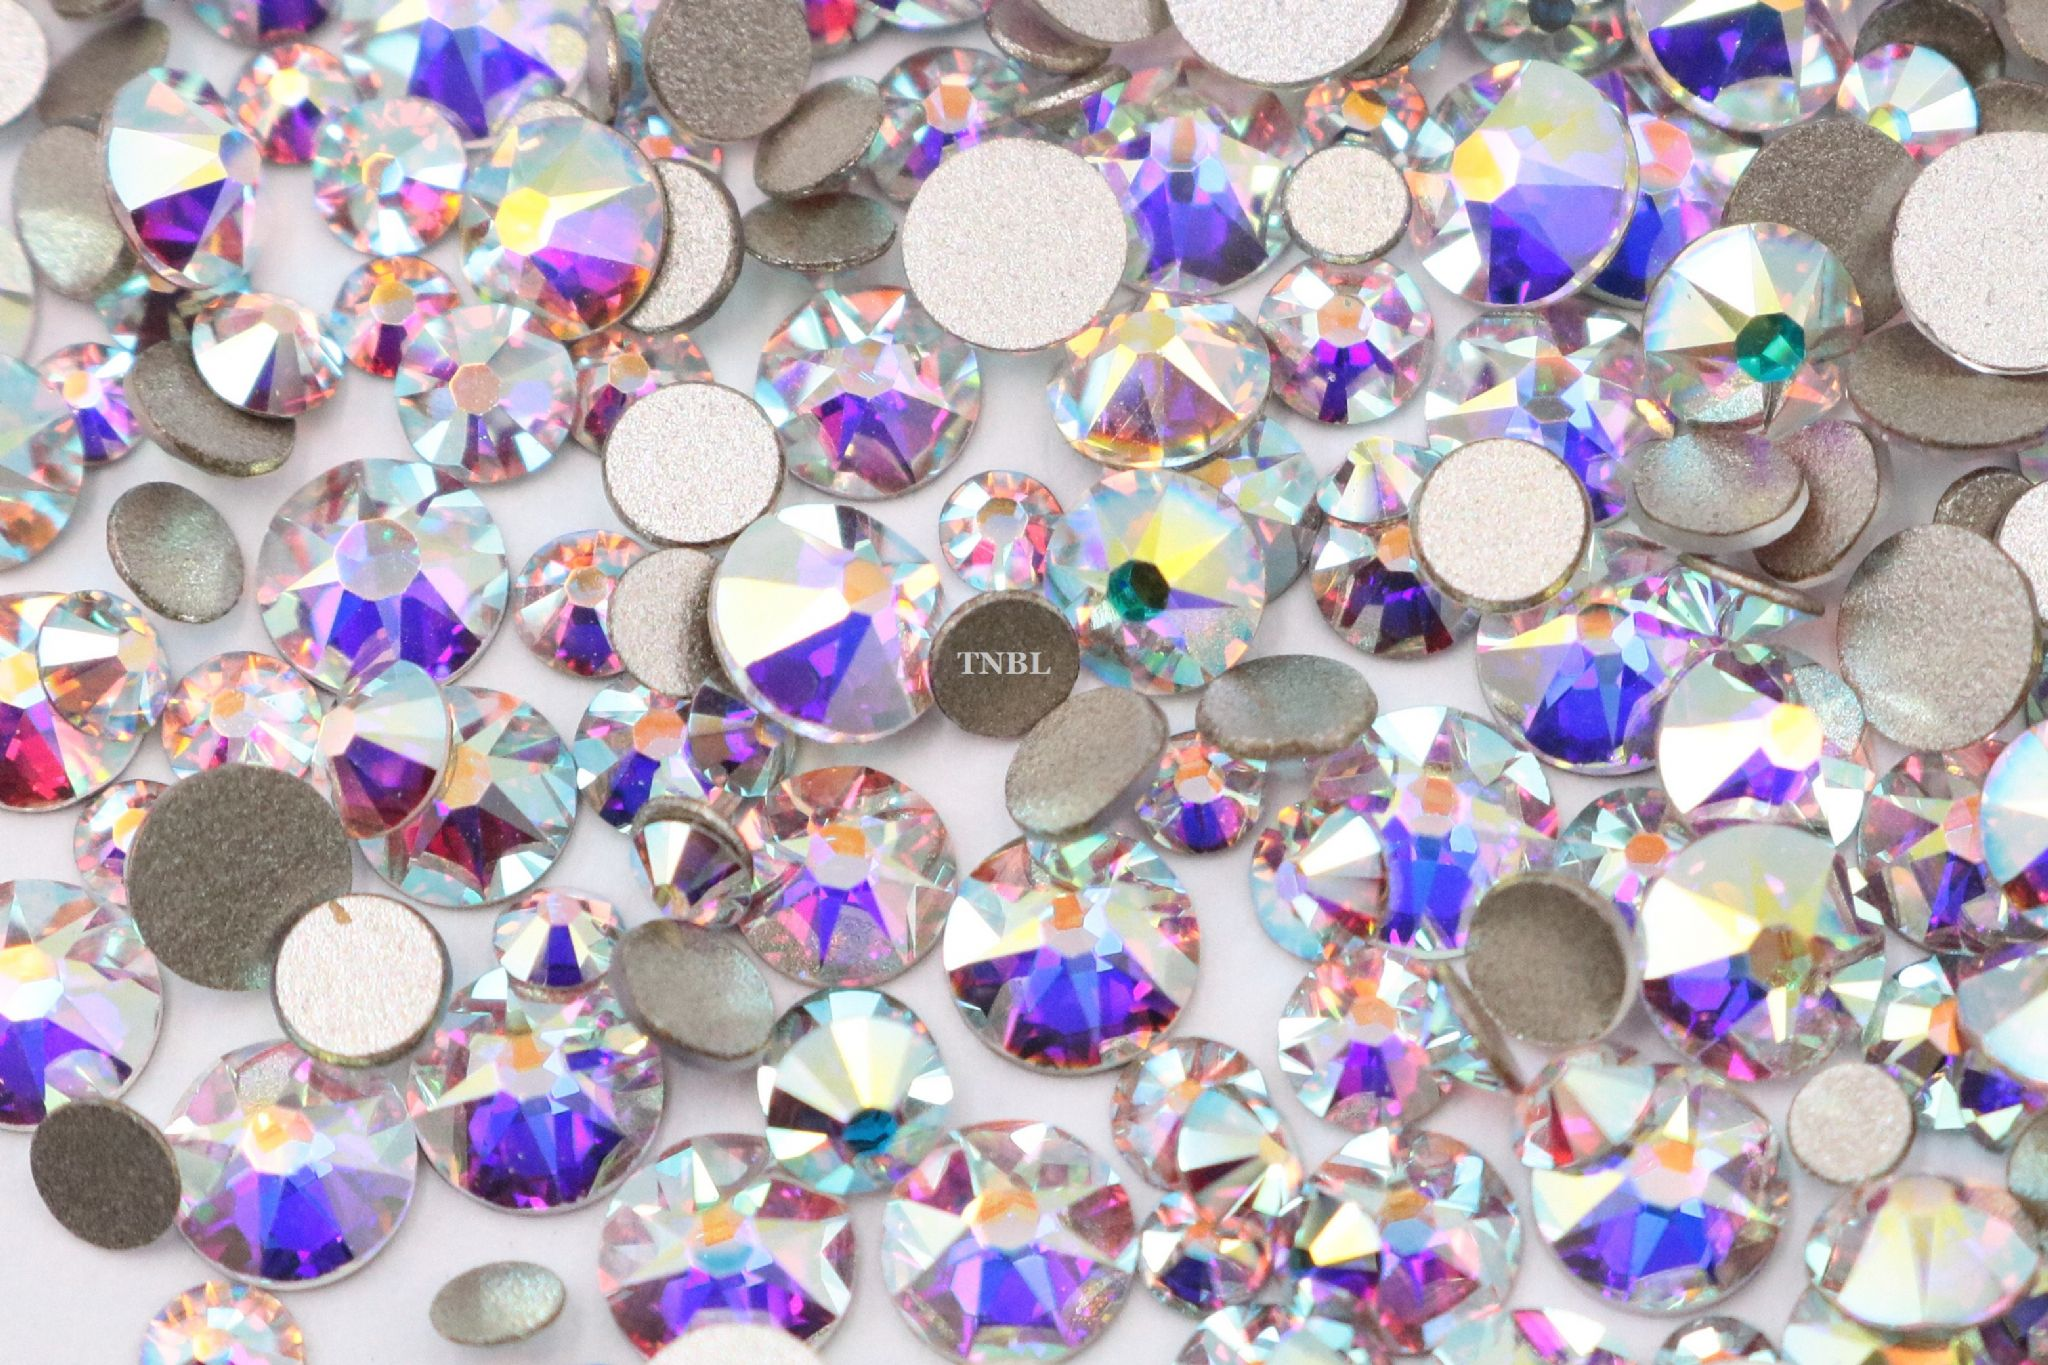 8e910888d Swarovski Crystals Aurore Boreale 001 AB Rhinestone Gems Article 2058 -  Mixed Pack 200pcs